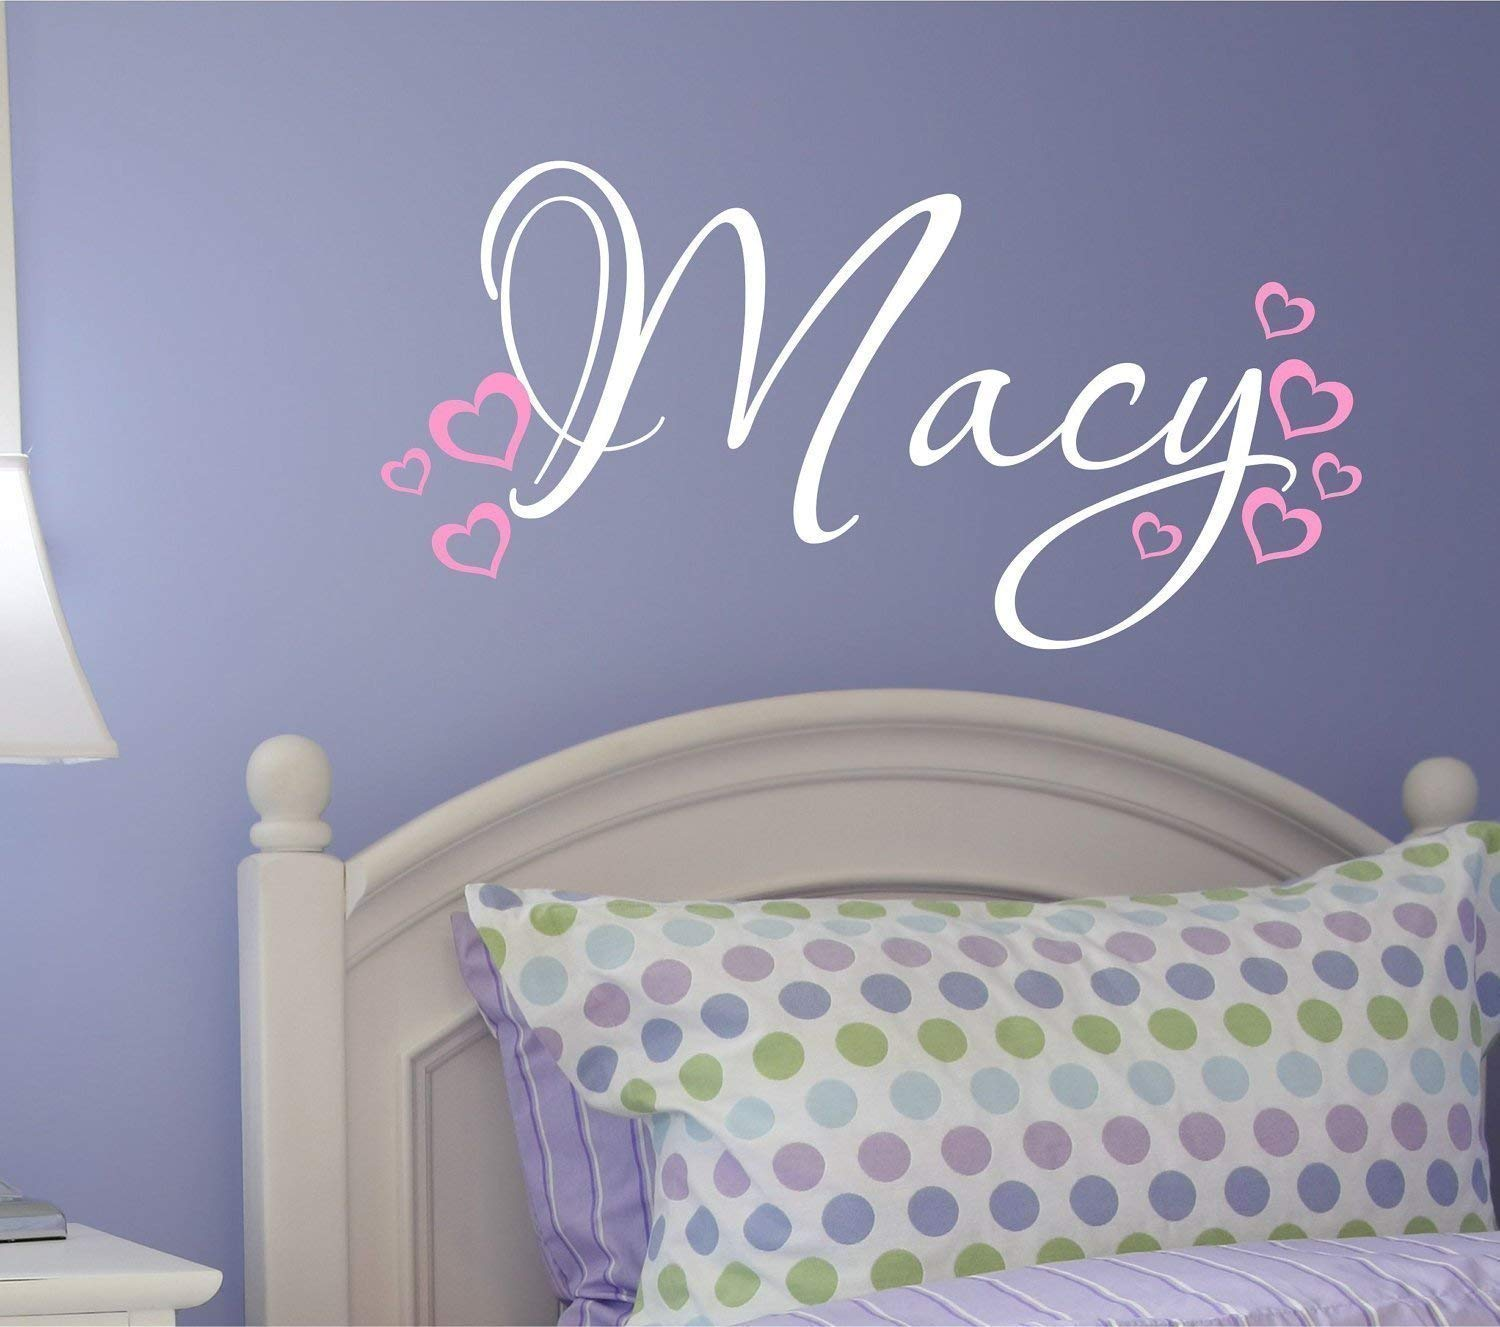 Nursery Wall Decal - Personalized Name Wall Decal with Hearts